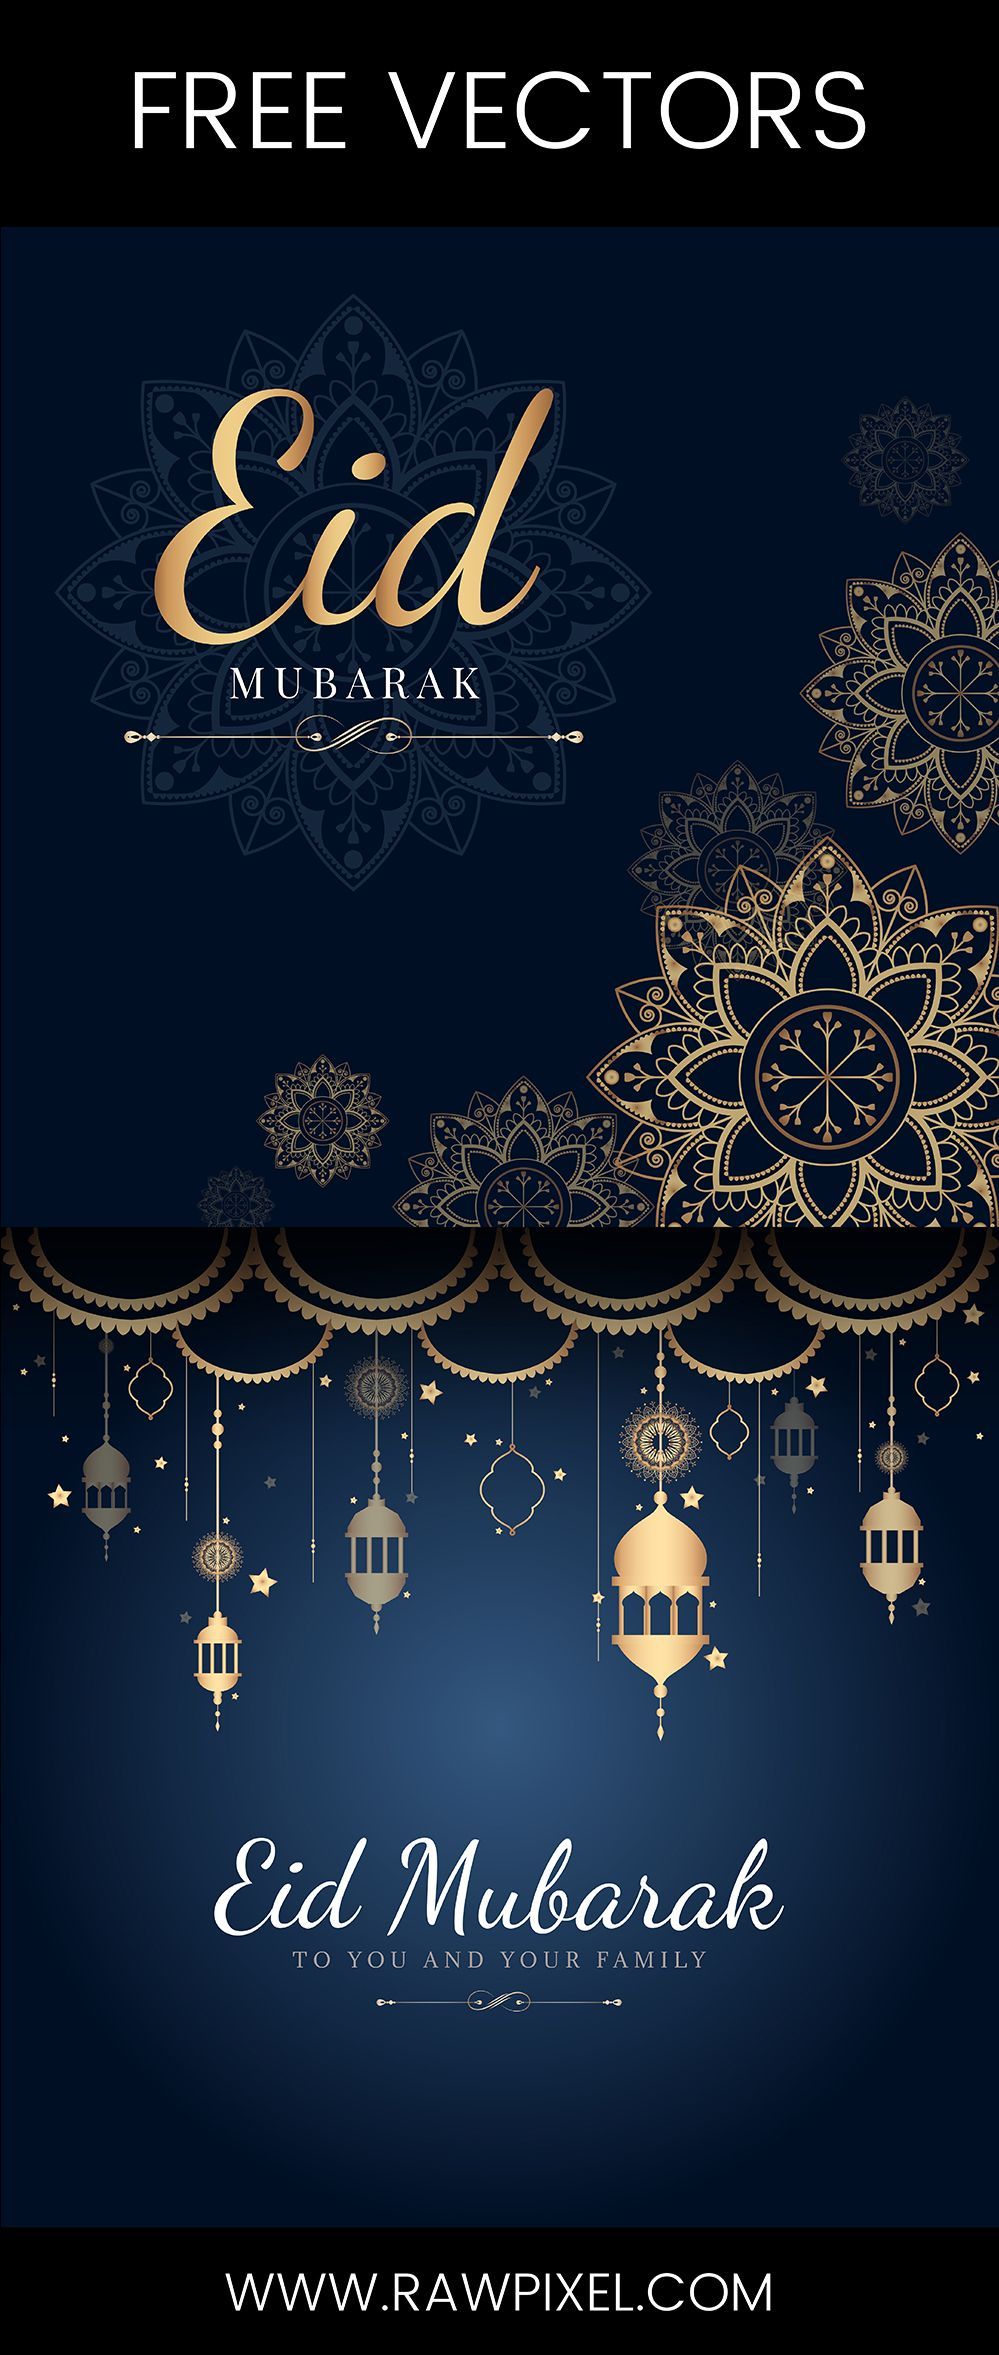 Free To Download Royalty Free Eid Mubarak Vectors Plus Many More